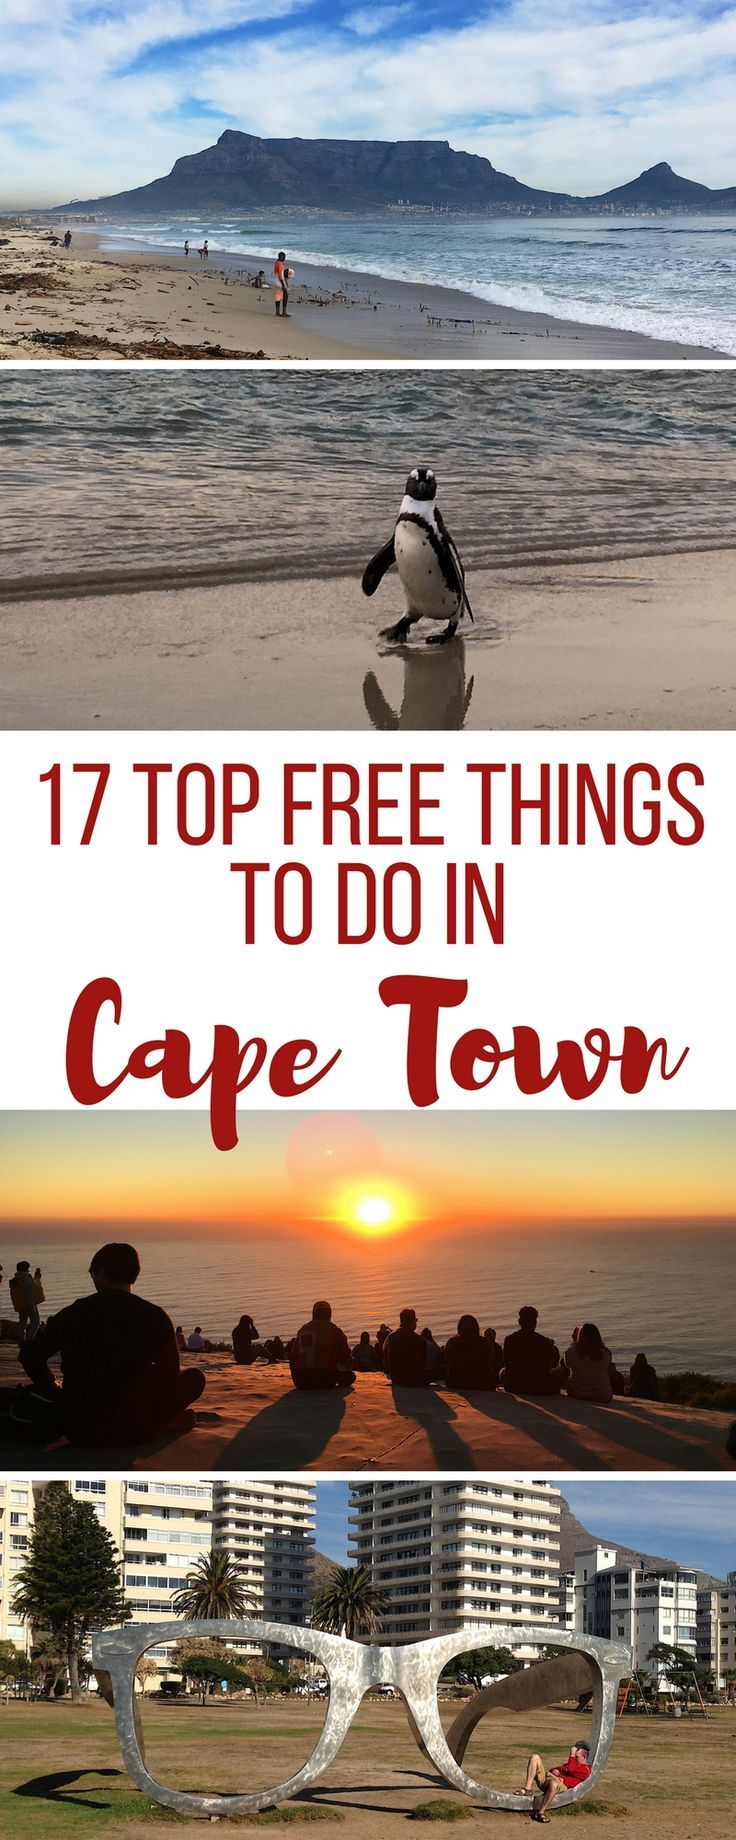 17 Top free things to do in Cape Town South Africa. Travel in Africa.